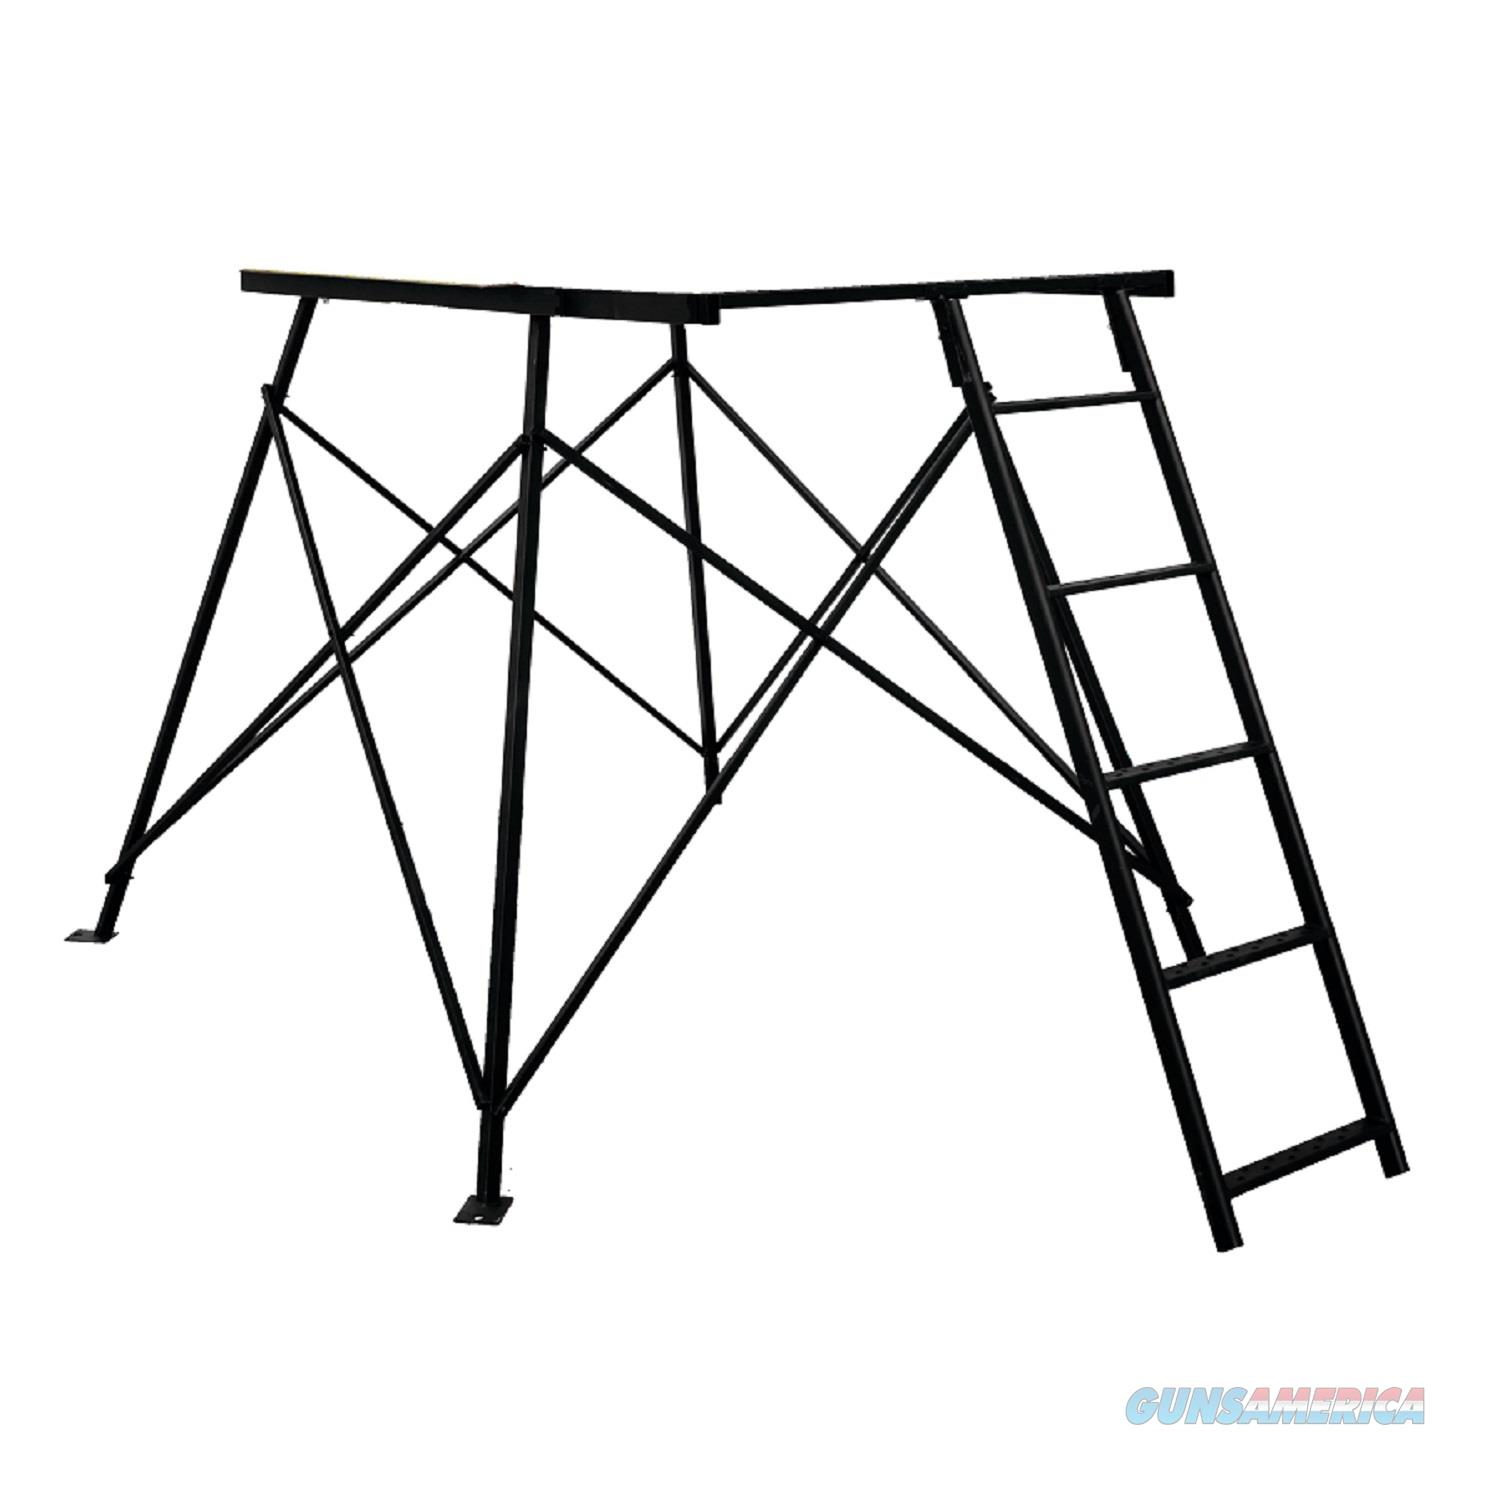 Muddy Deluxe 5Ft Tower Extension Kit BBT210  Non-Guns > Hunting Clothing and Equipment > Tree Stands